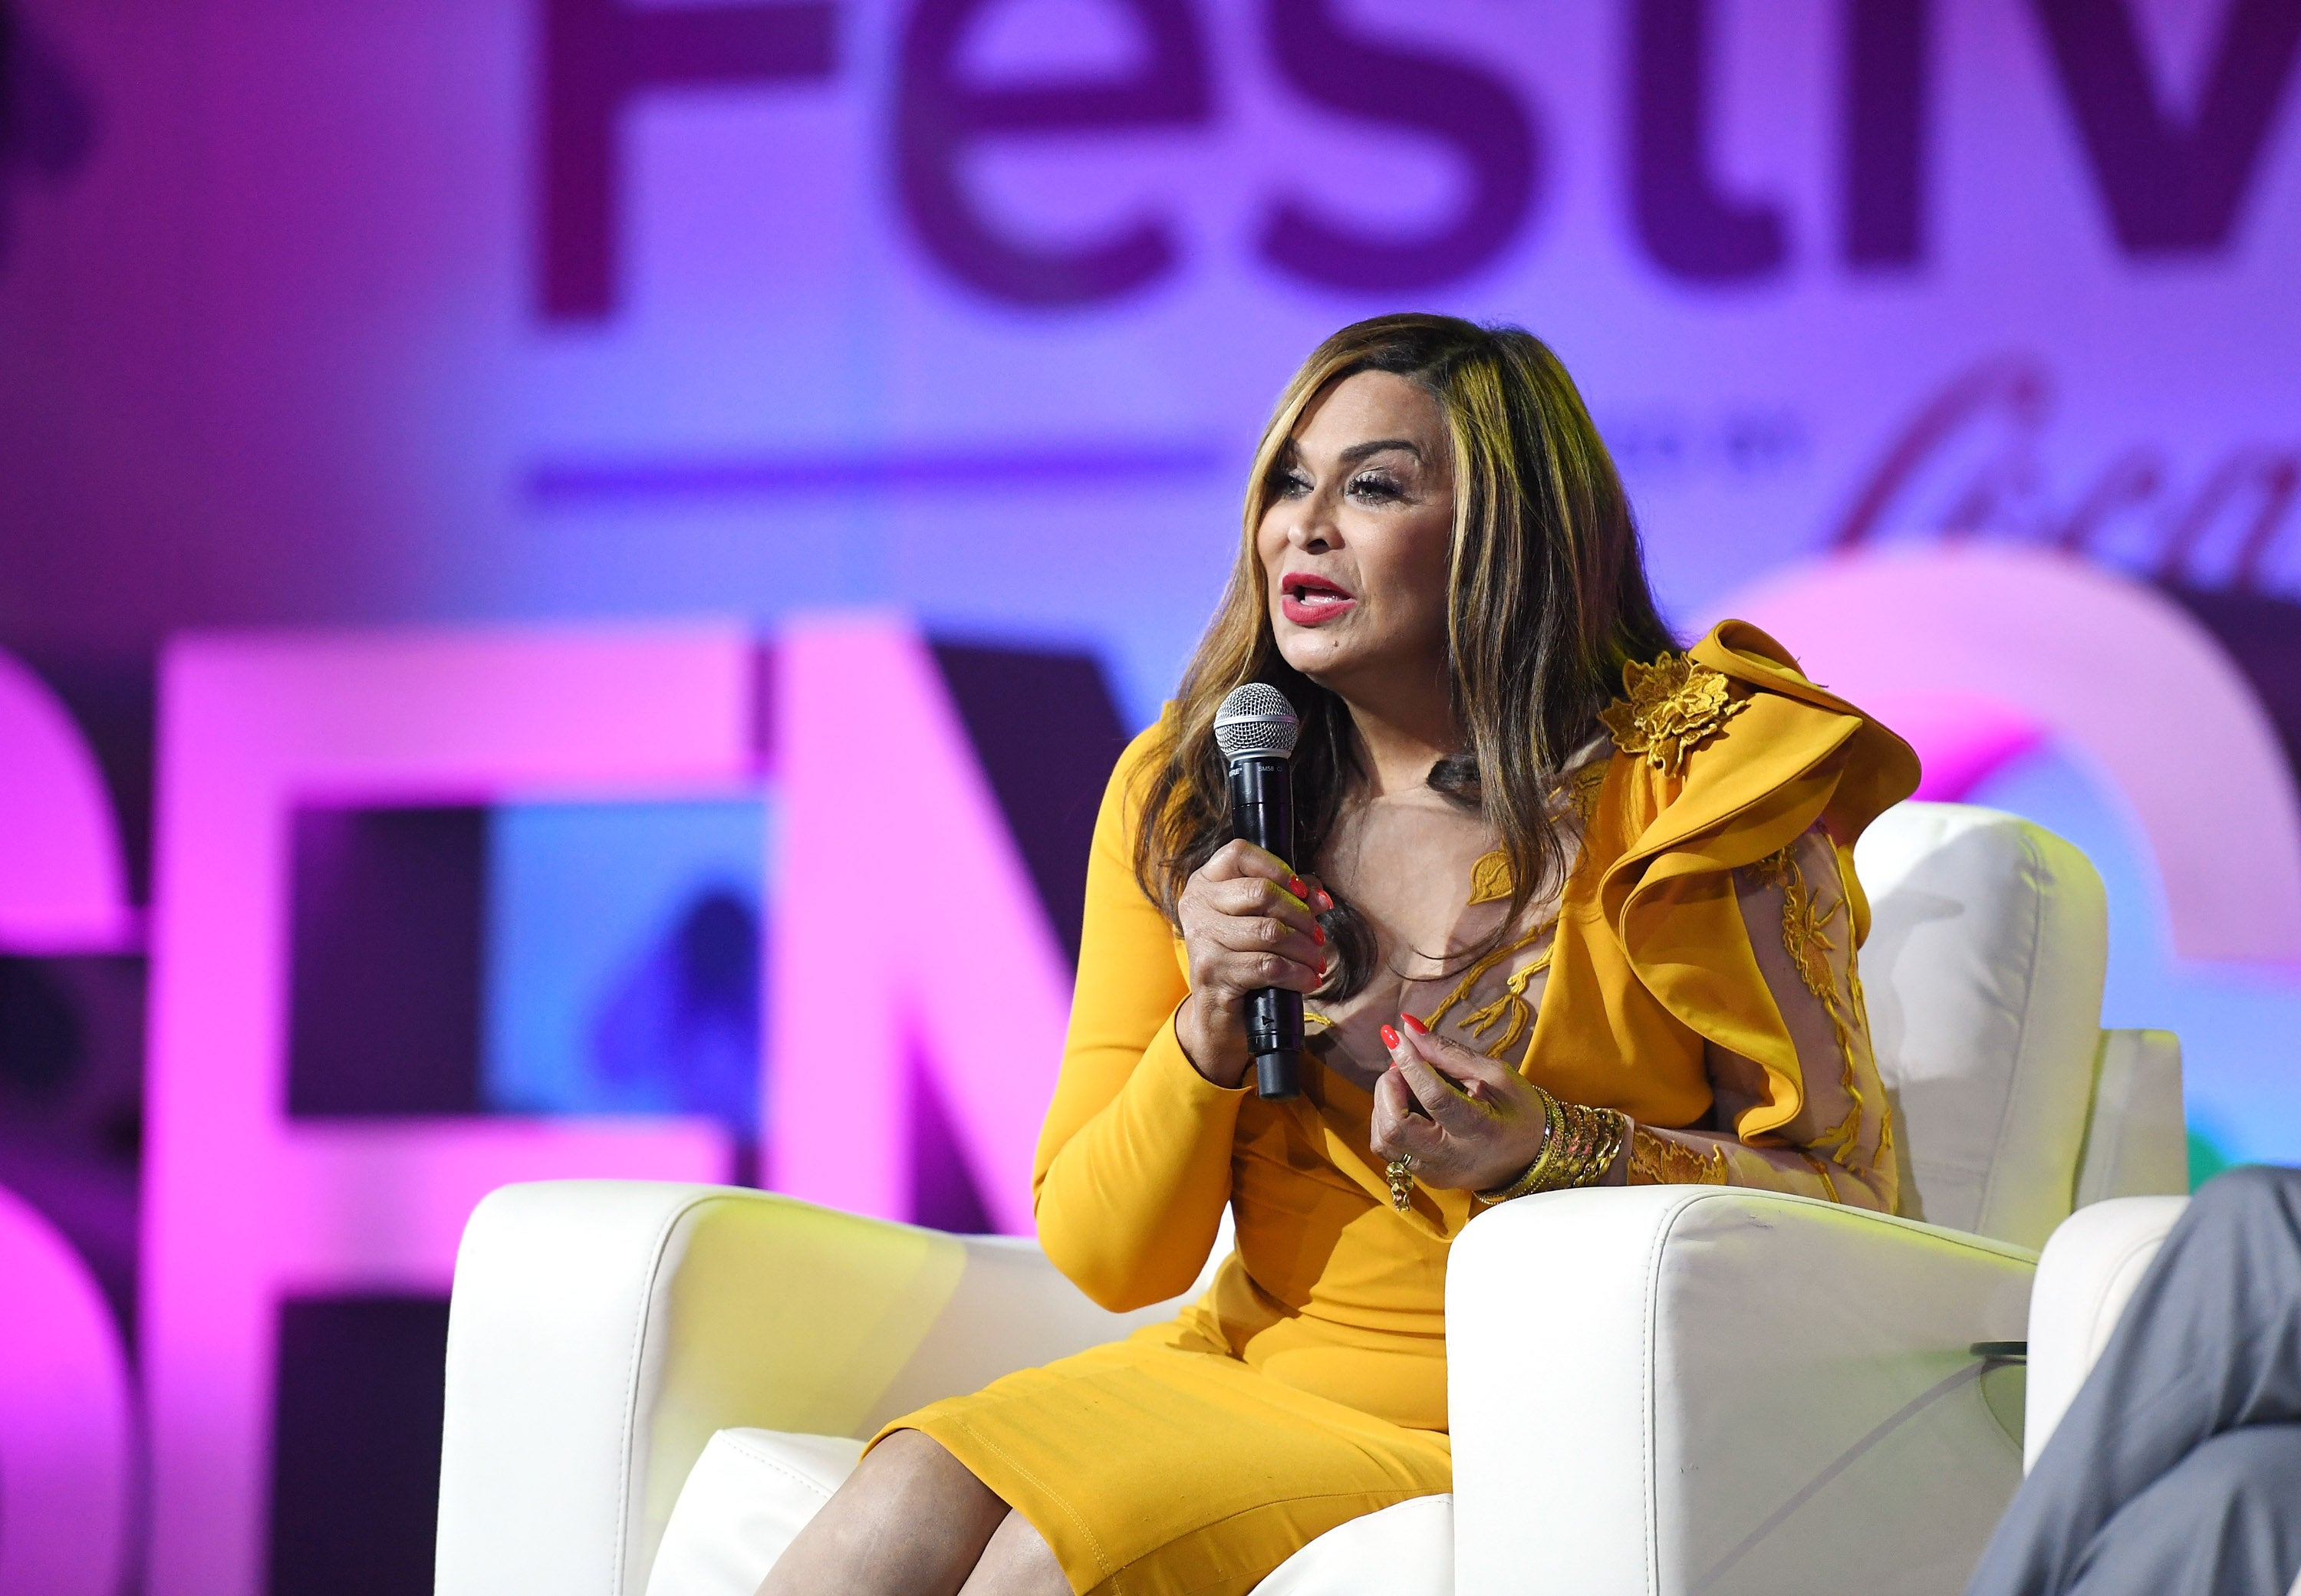 Tina Knowles Opens Up About Past Money Problems During Intimate Talk At ESSENCE Fest